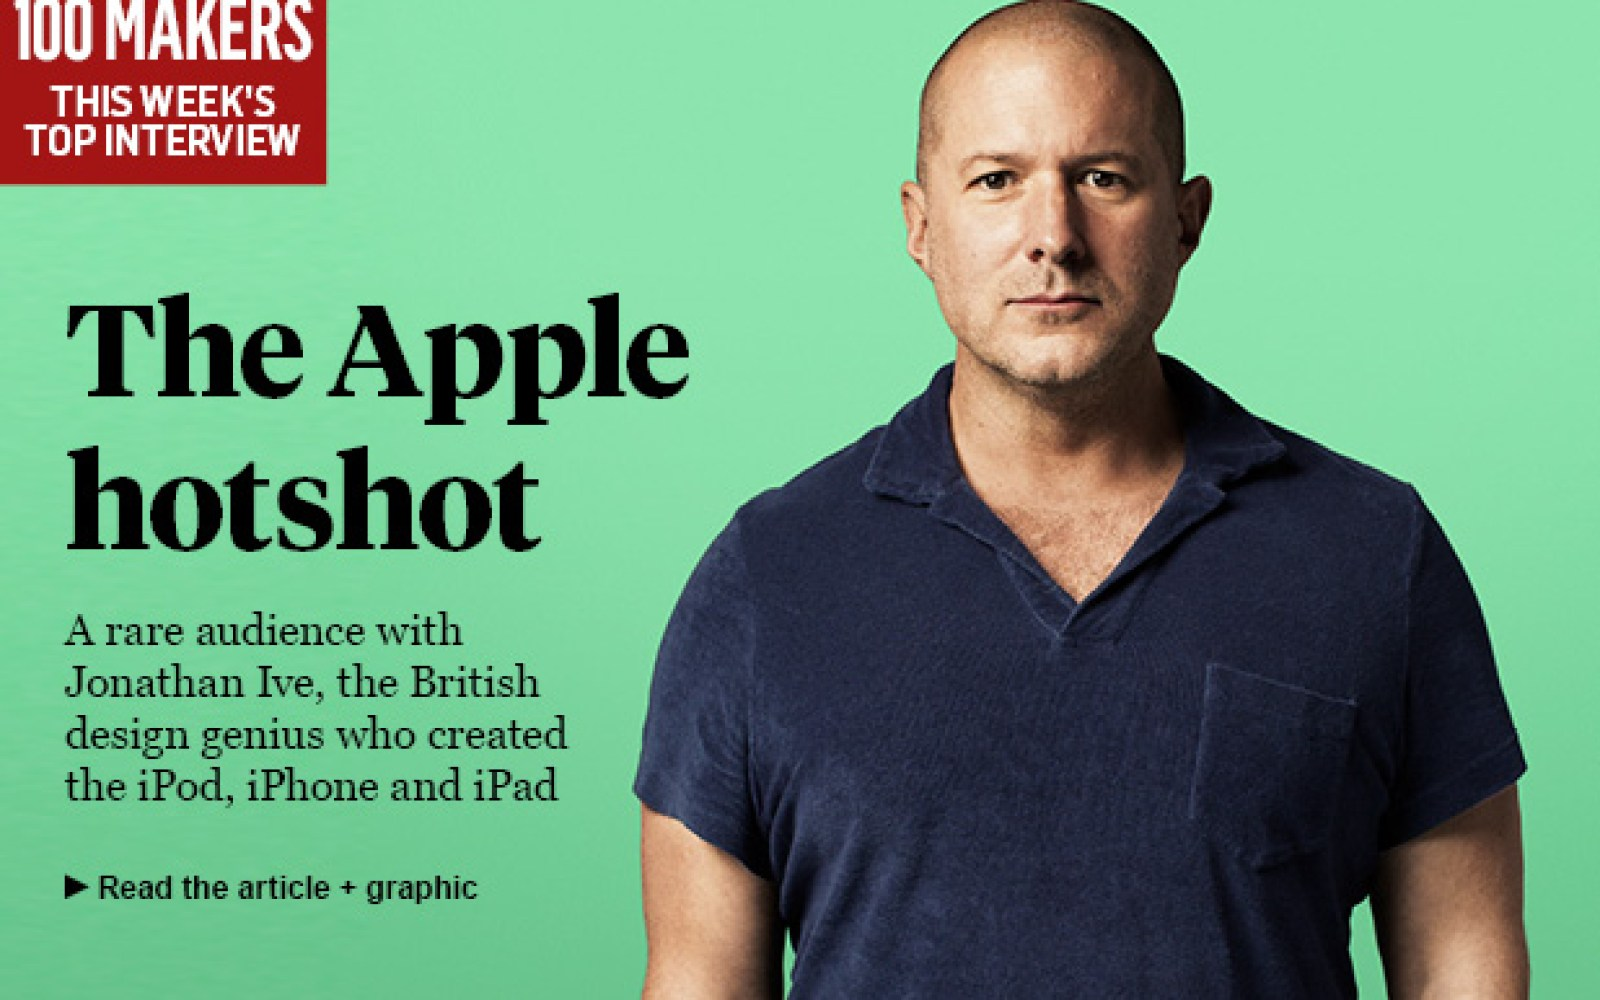 Sunday Times interviews Jonathan Ive on everything design, Apple, and much more